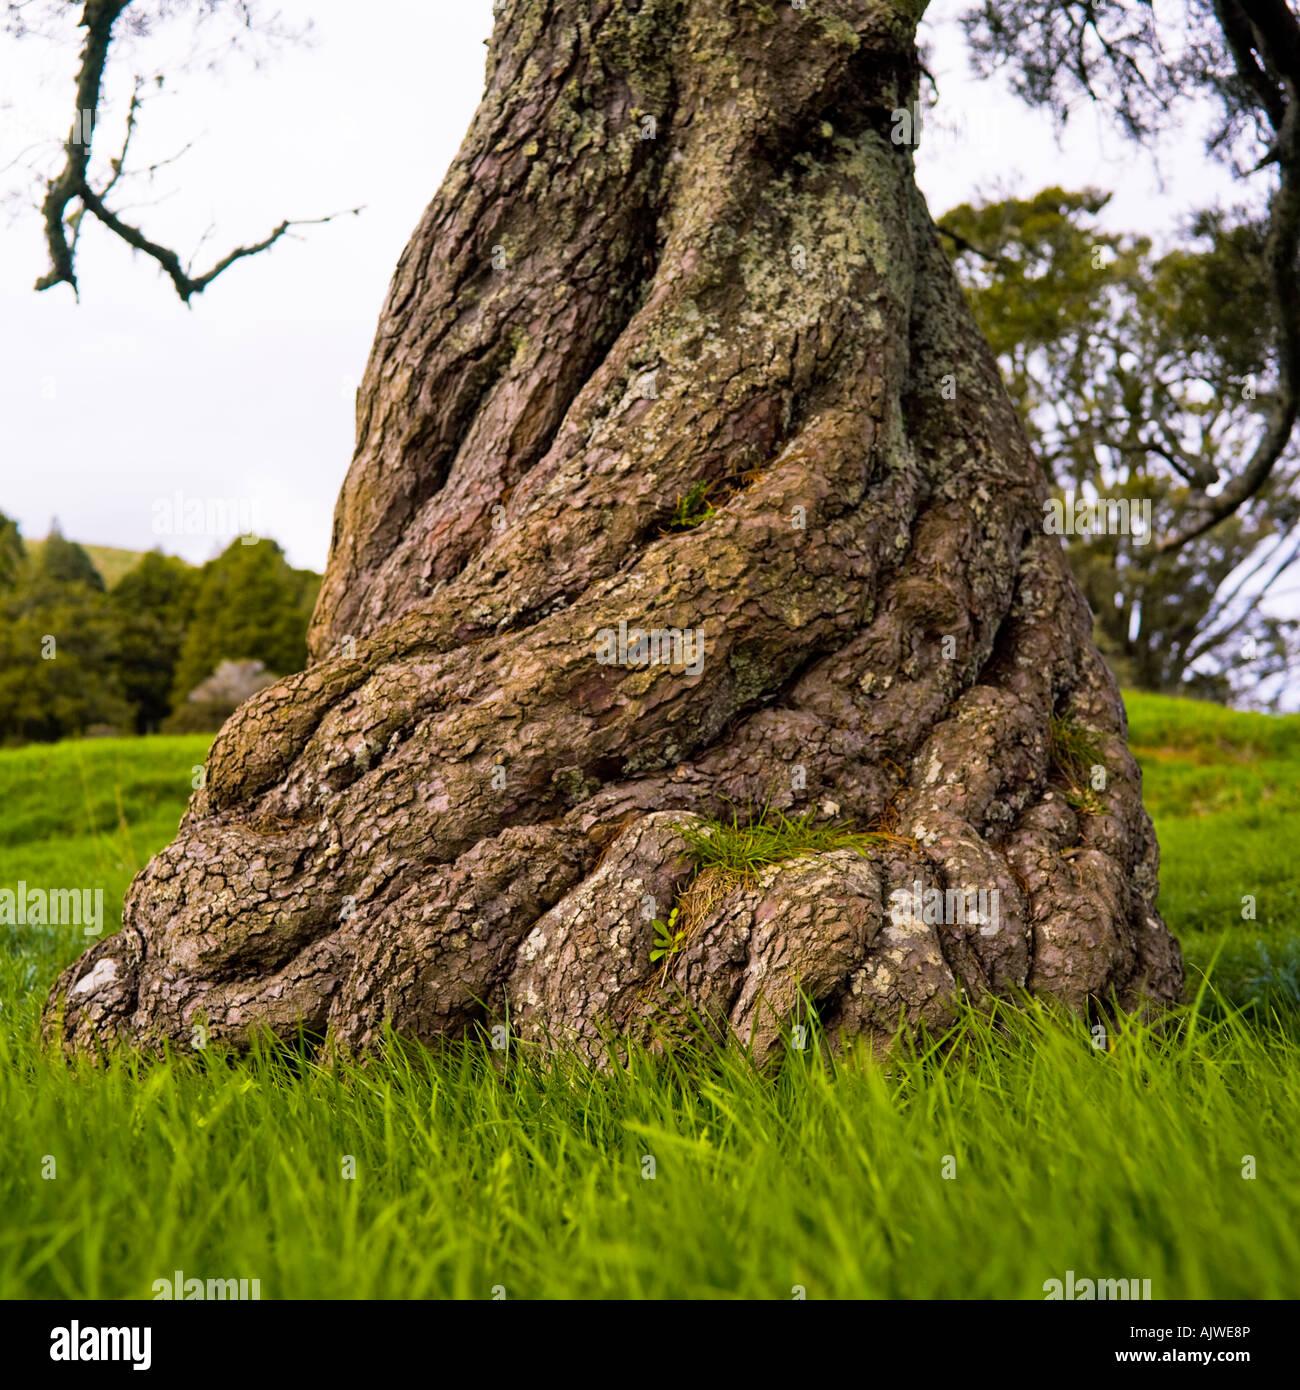 Twisted tree trunk - Stock Image